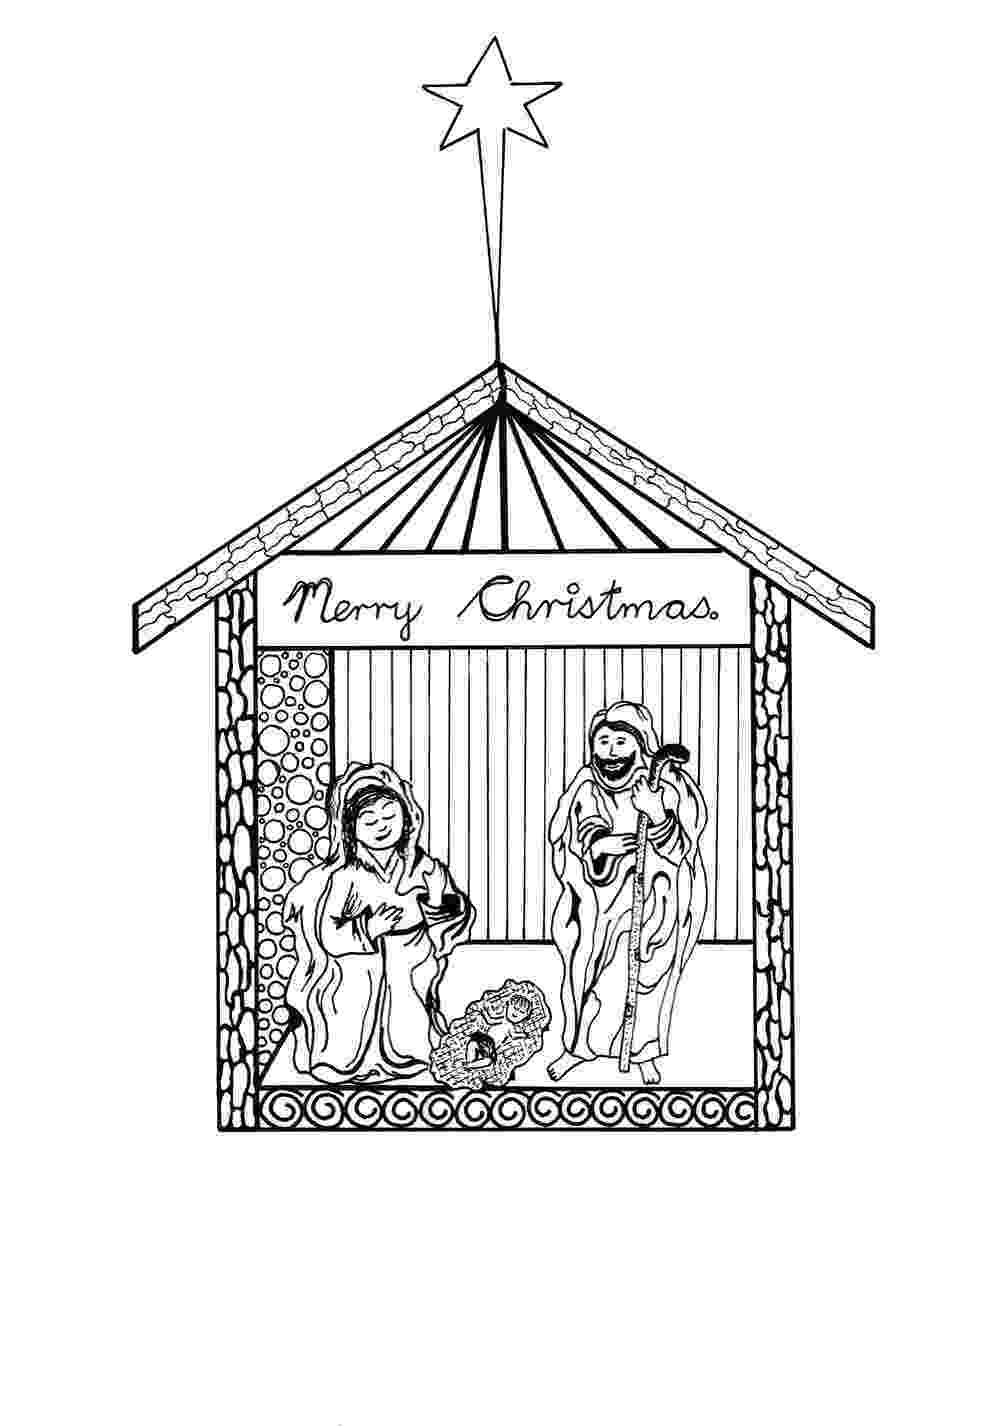 nativity scene coloring pages serendipity hollow nativity figures coloring pages nativity scene